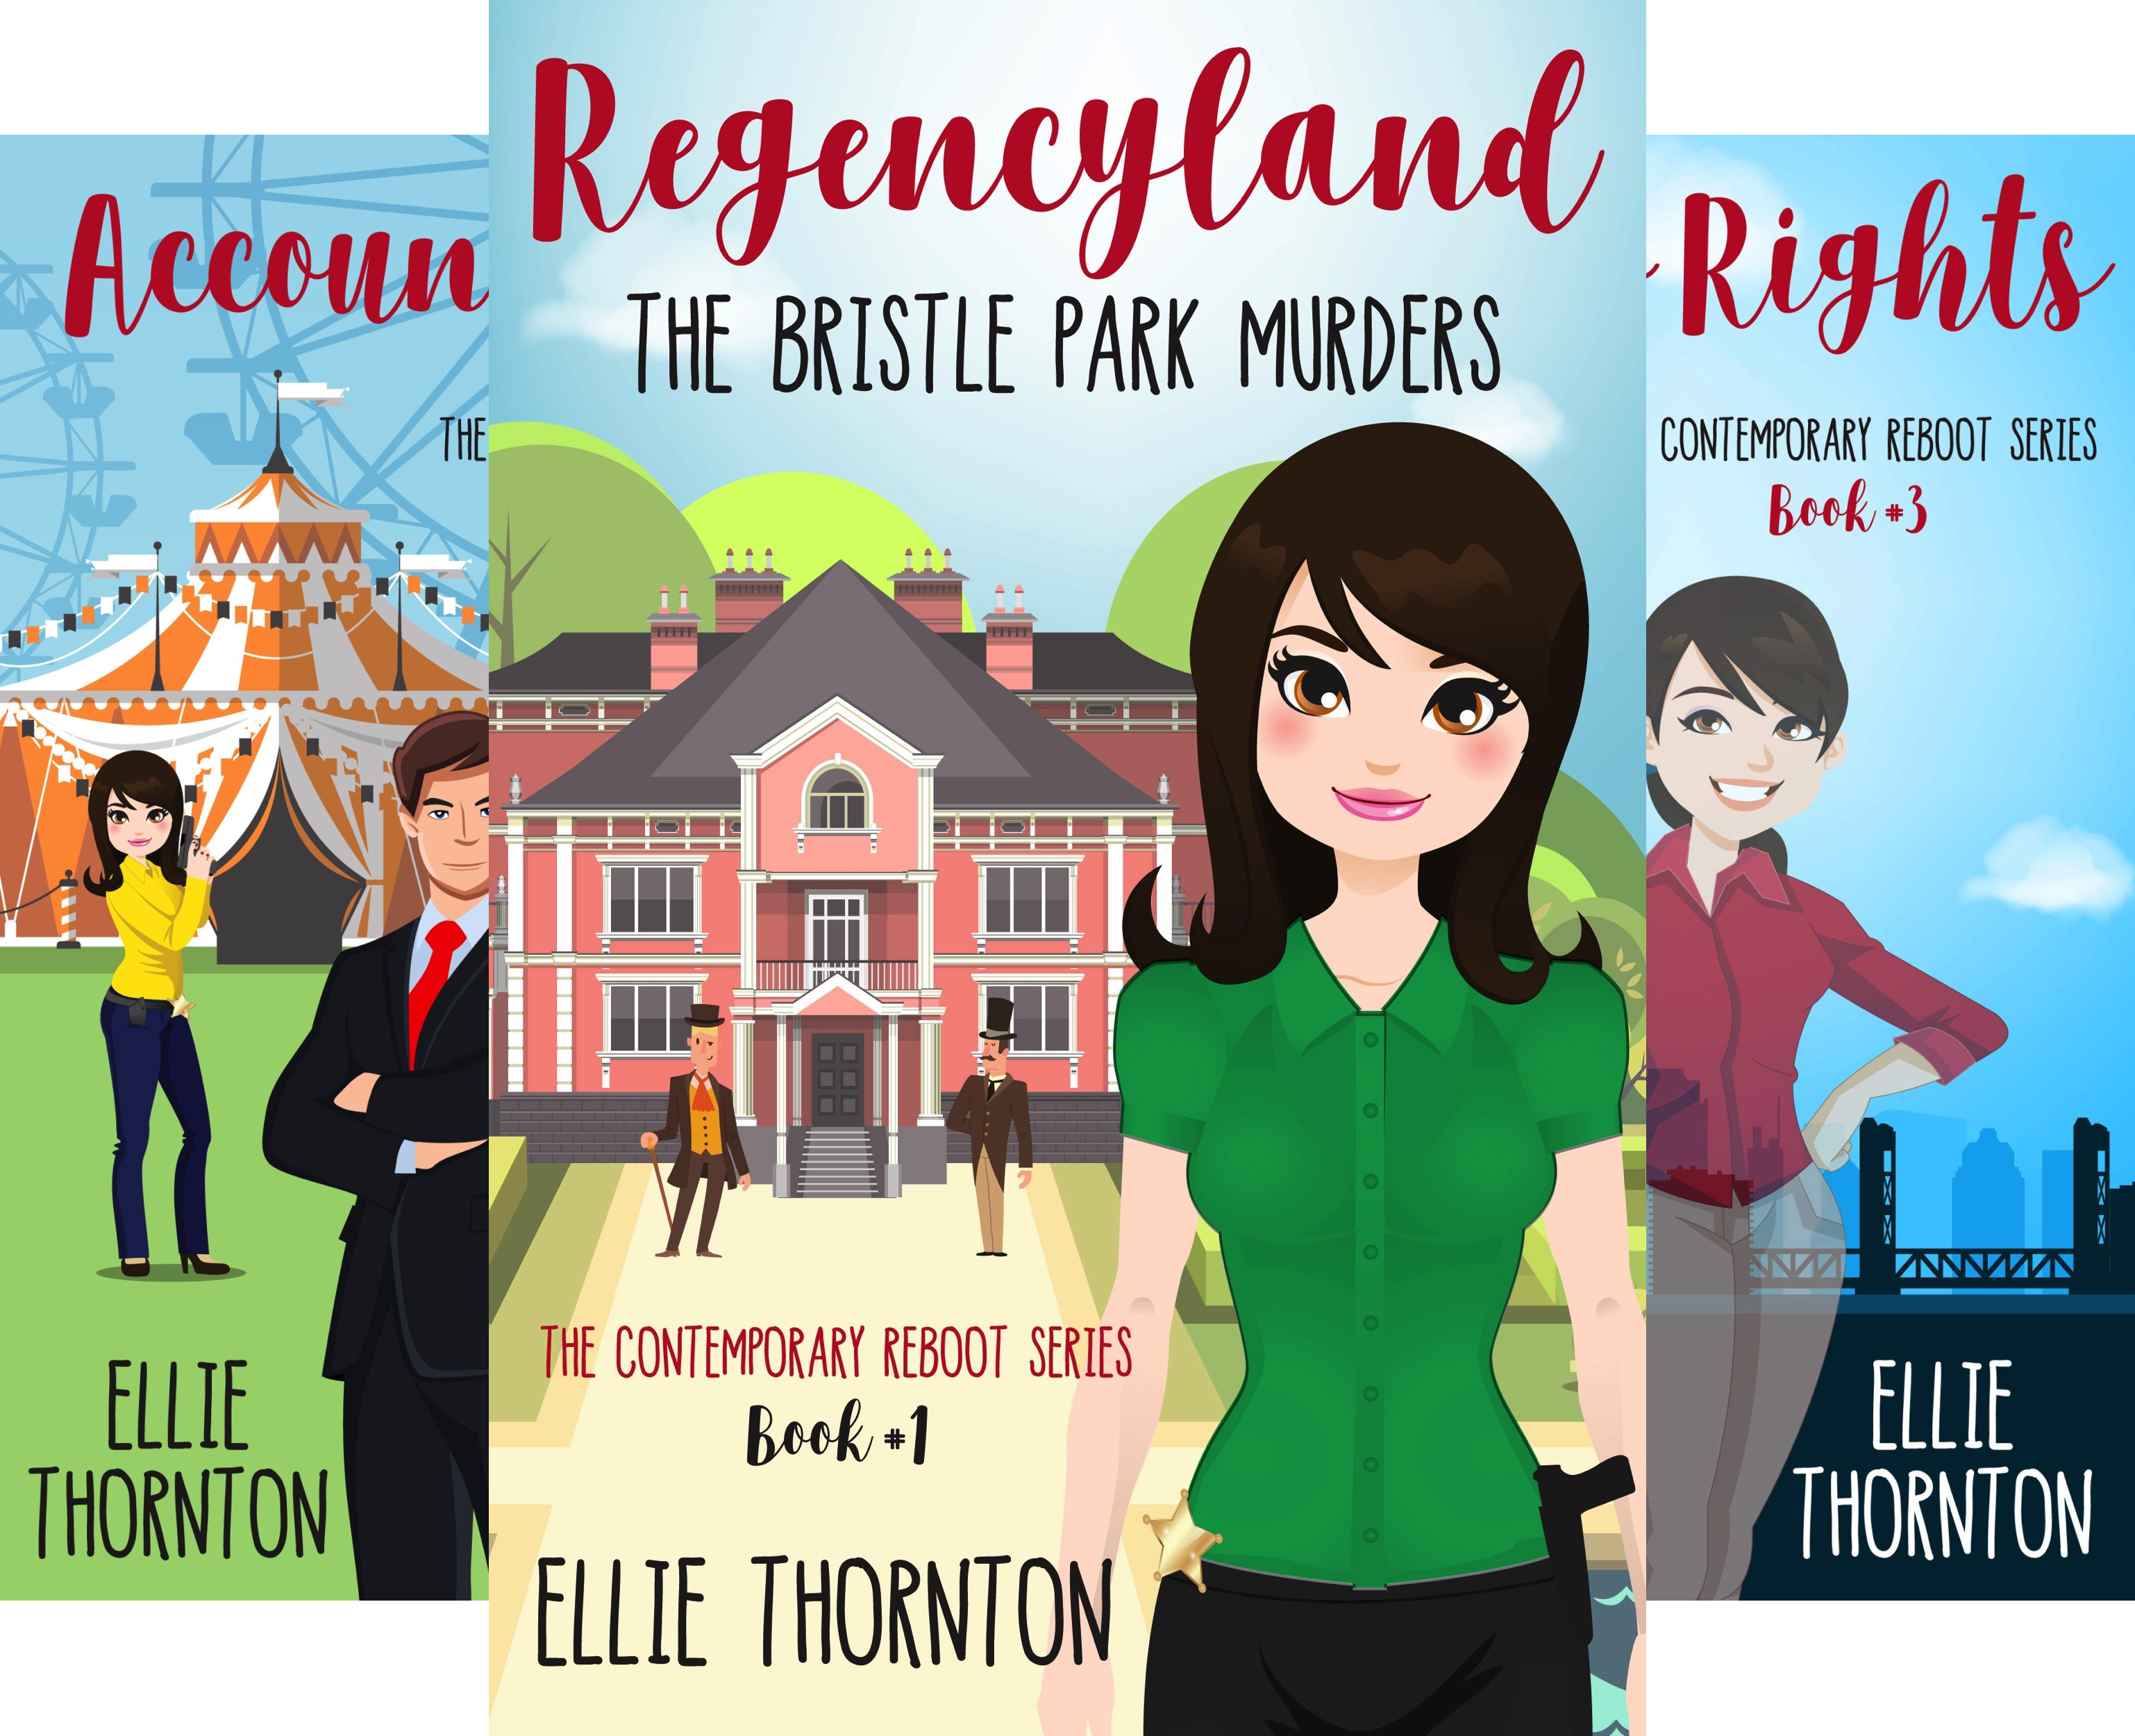 The Contemporary Reboot Series (3 Book Series)